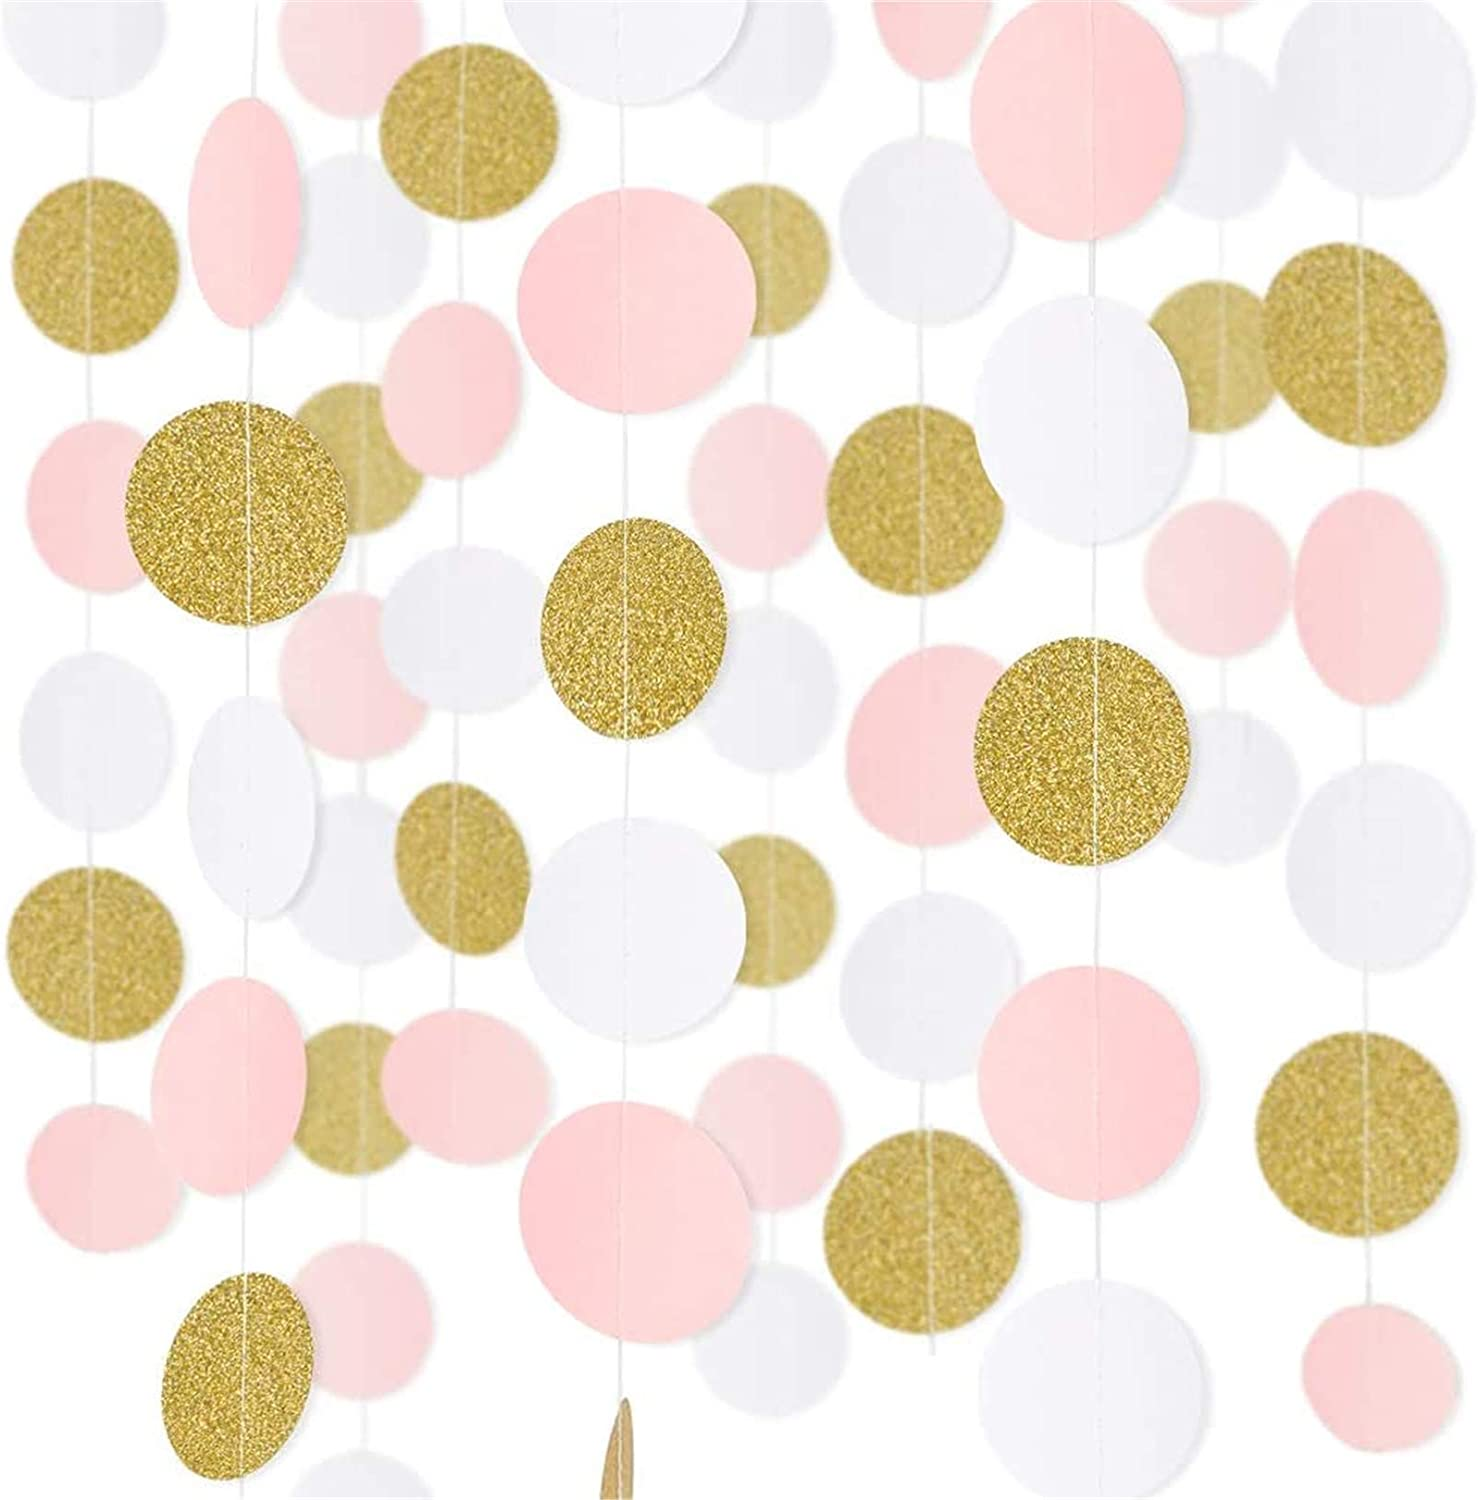 RUBFAC 5pcs 65ft Paper Garland Pink White Glitter Gold Circle Dots Hanging Decorations Streamers for Birthday Party Wedding, Class Room Decorations